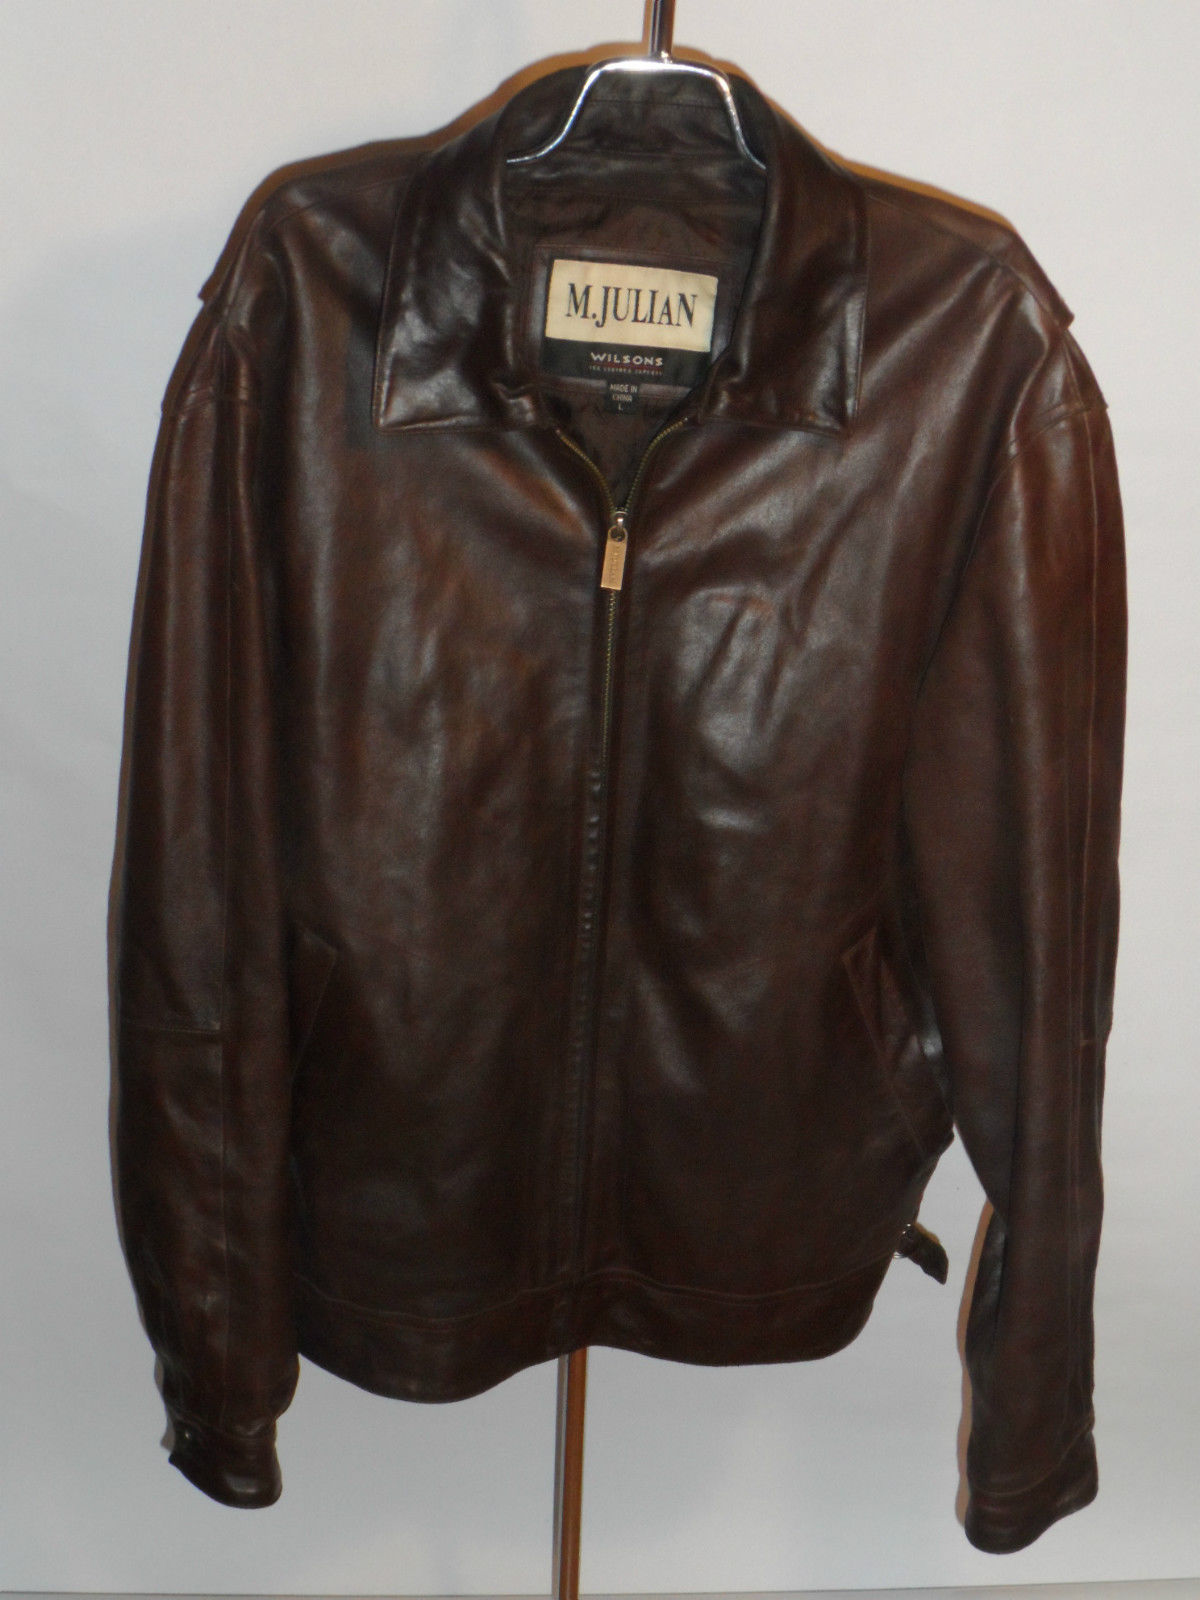 Wilsons leather jackets